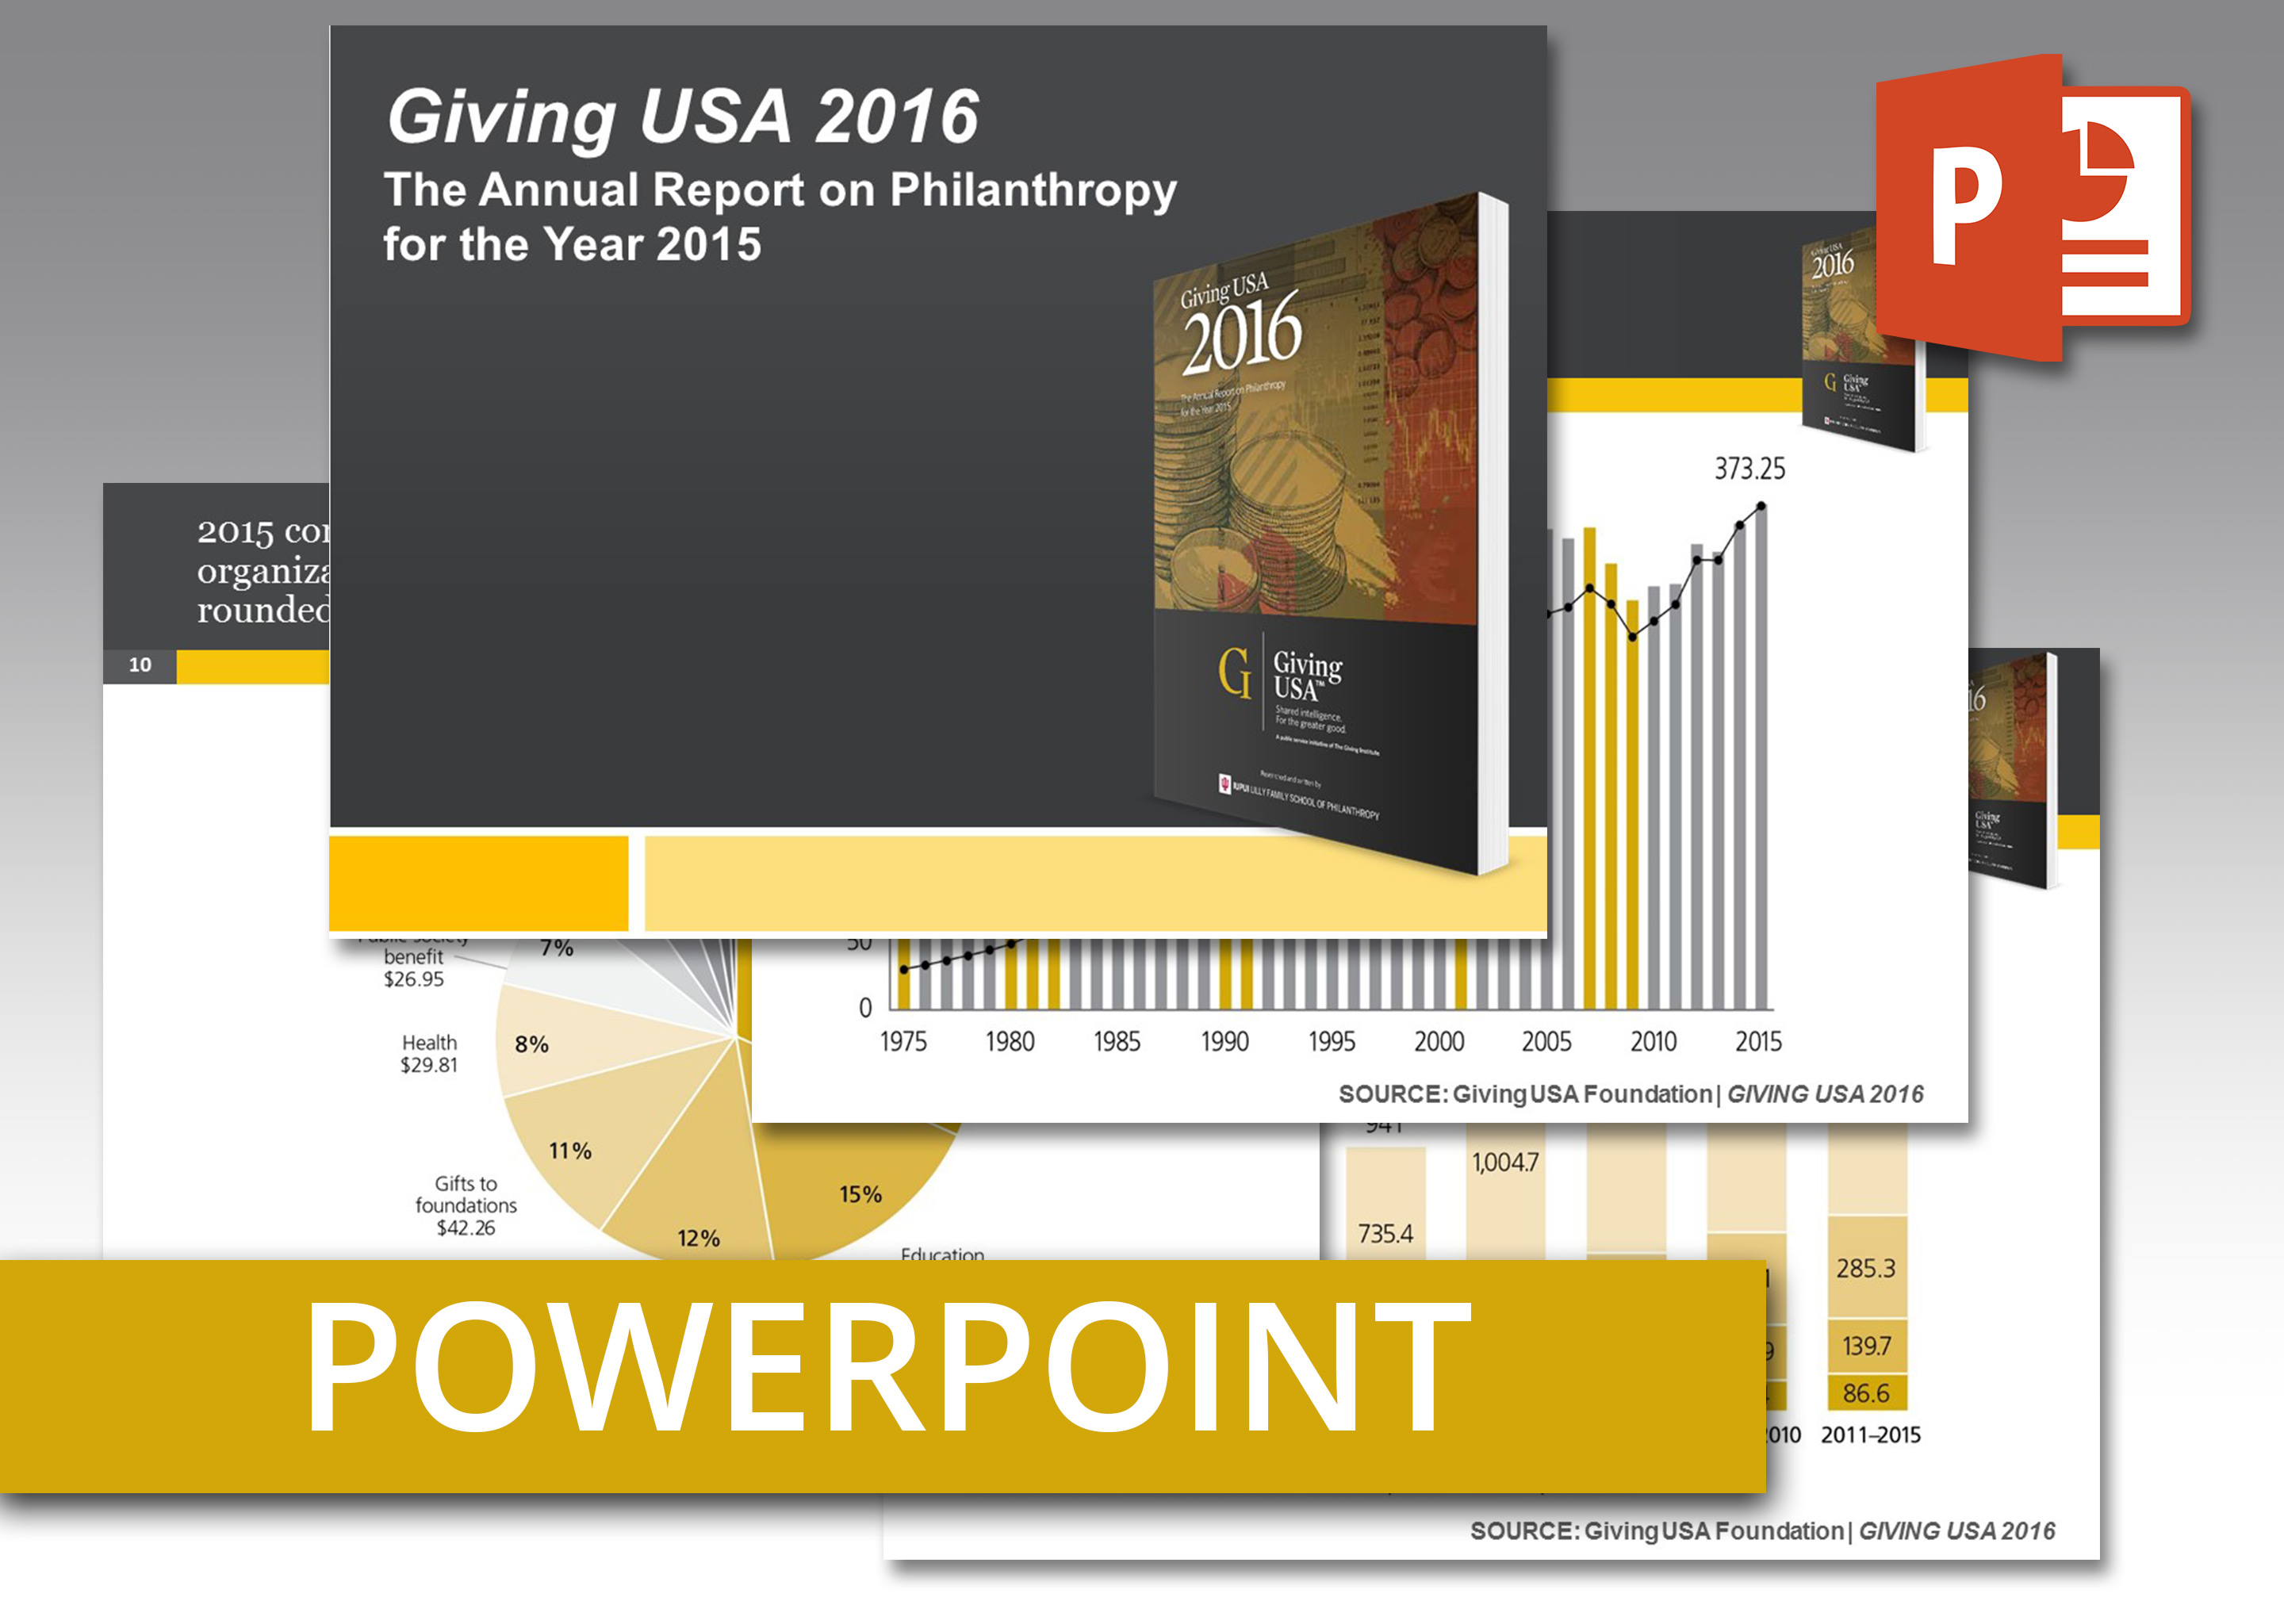 Usdgus  Pleasing Giving Usa  Powerpoint An Easytouse Presentation Of Report  With Fascinating Giving Usa  Powerpoint An Easytouse Presentation Of Report Findings Including Talking Points With Astounding Present Perfect Powerpoint Also Powerpoint Diabetes Education In Addition Pdf To Powerpoint Online Converter And Basic Electricity Powerpoint As Well As Globalization Powerpoint Presentation Additionally Science Lab Safety Powerpoint From Givingusaorg With Usdgus  Fascinating Giving Usa  Powerpoint An Easytouse Presentation Of Report  With Astounding Giving Usa  Powerpoint An Easytouse Presentation Of Report Findings Including Talking Points And Pleasing Present Perfect Powerpoint Also Powerpoint Diabetes Education In Addition Pdf To Powerpoint Online Converter From Givingusaorg